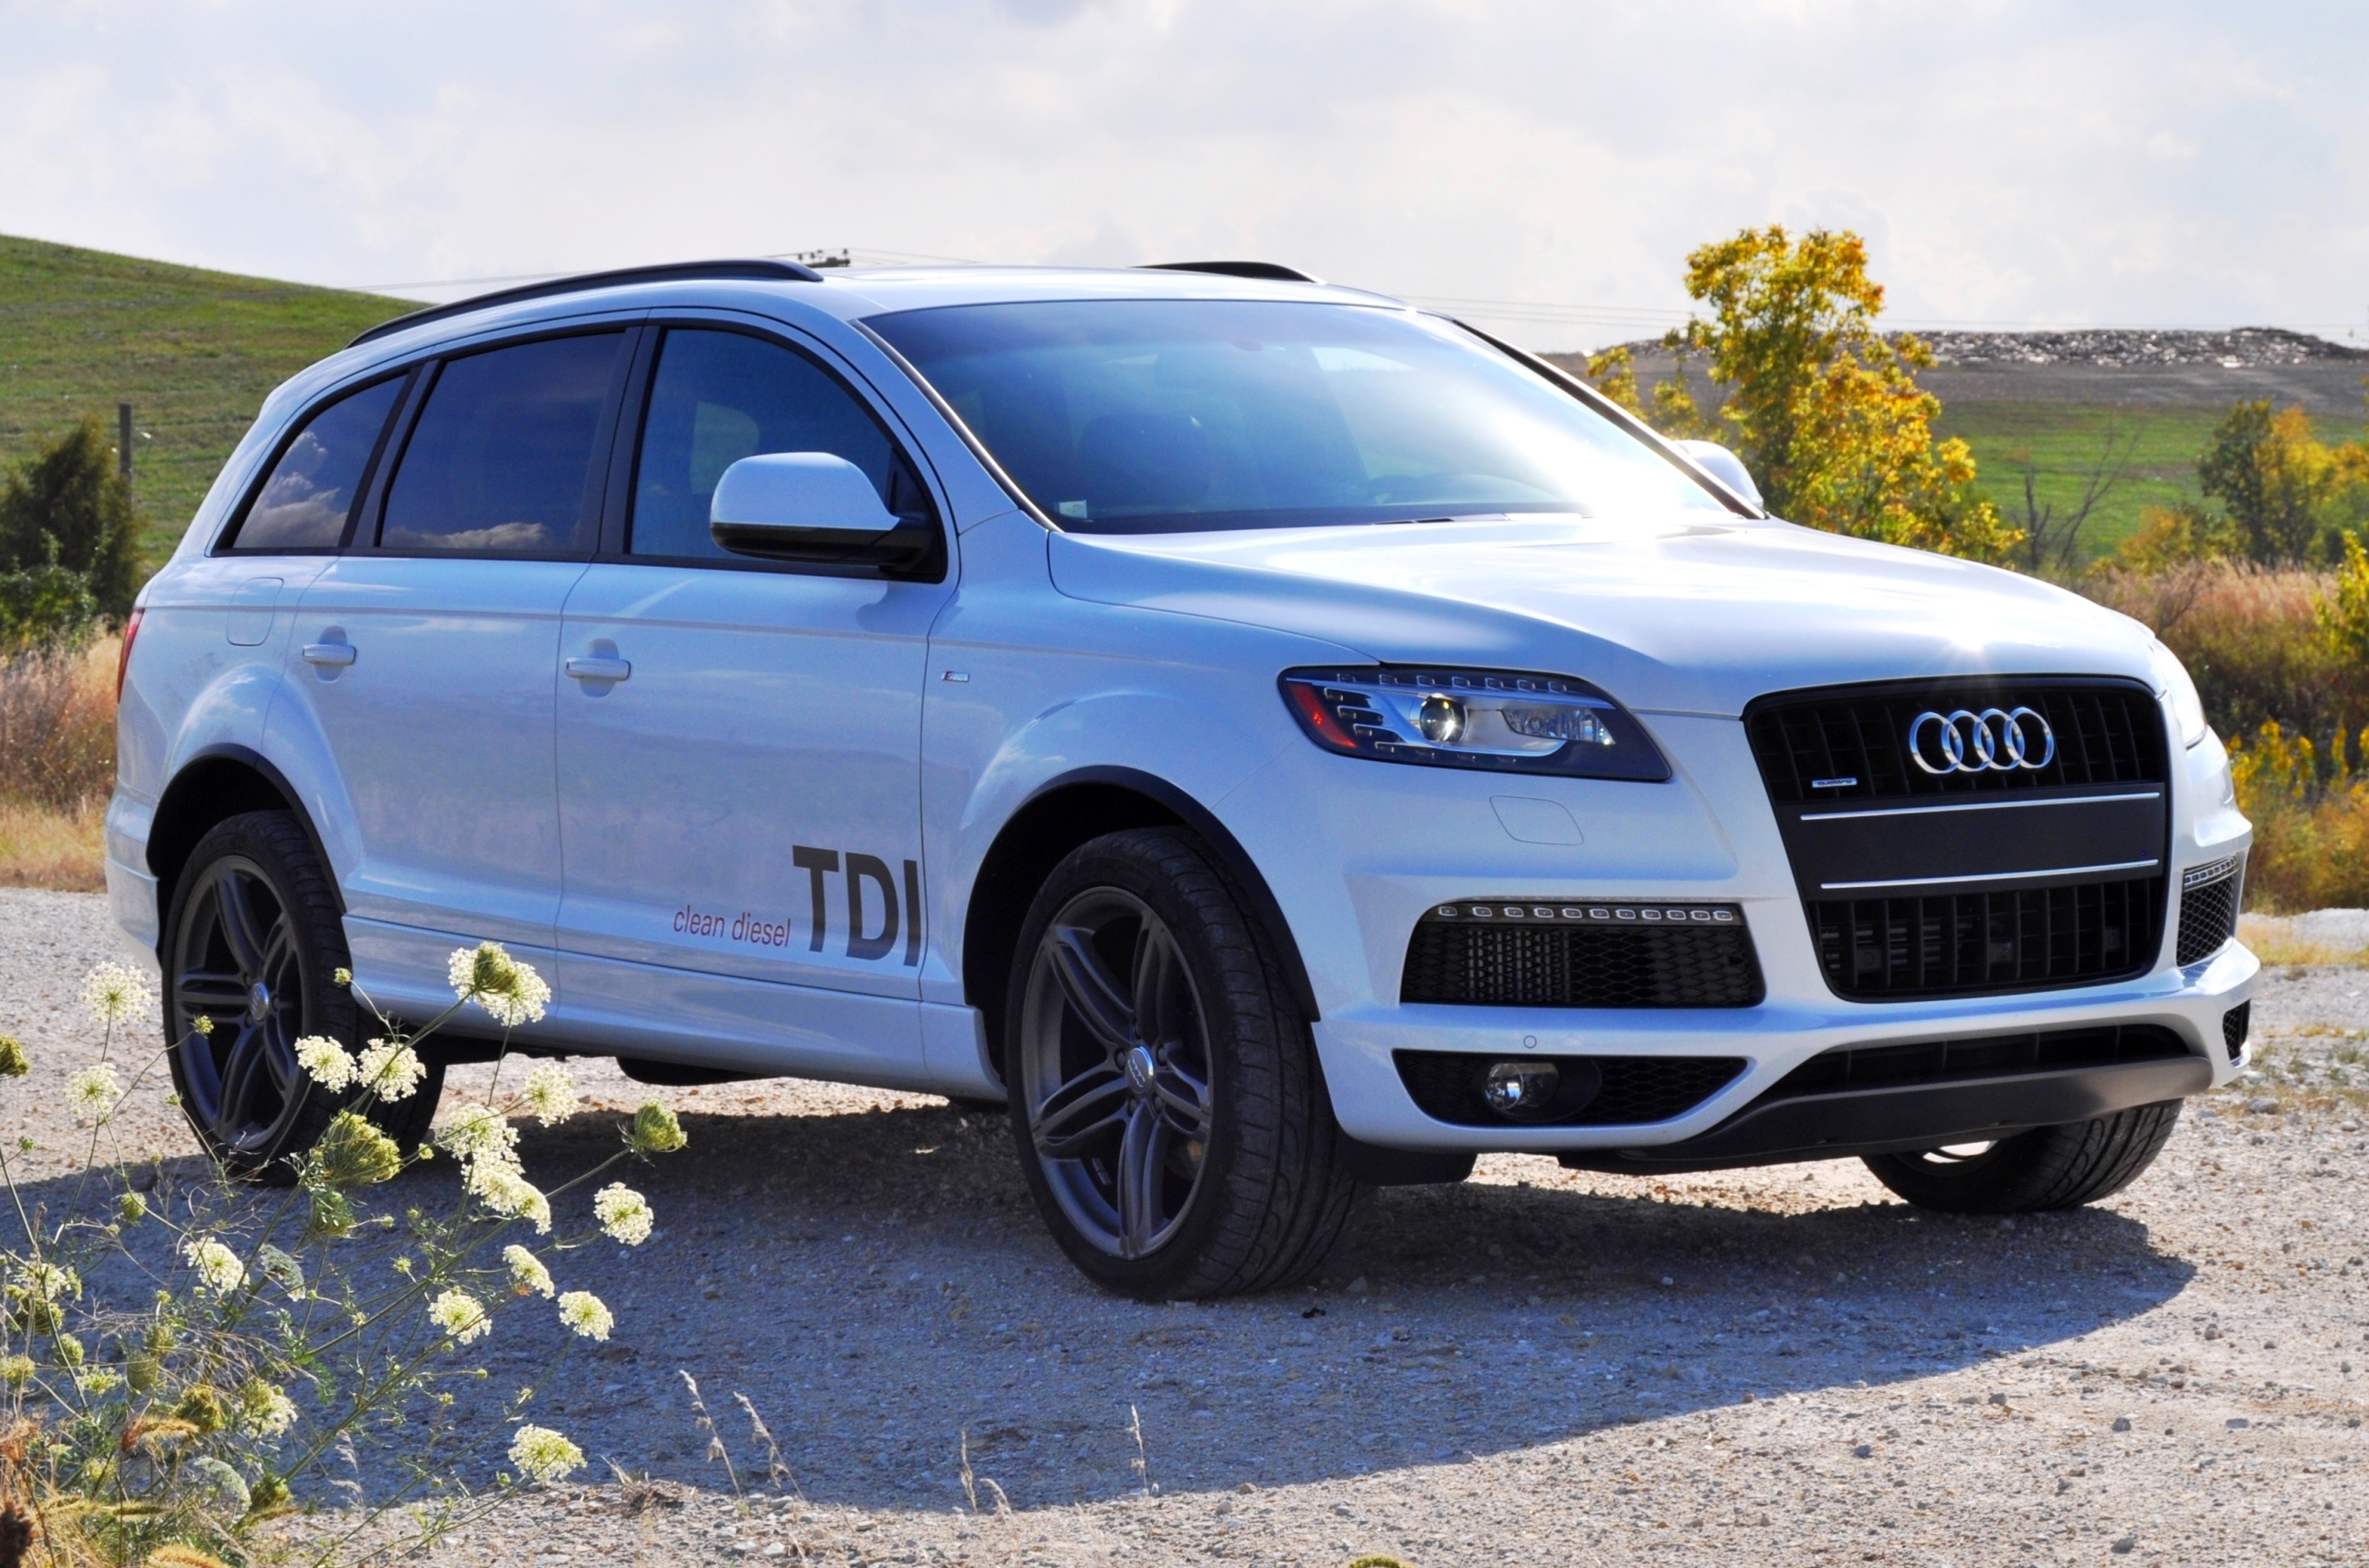 fans uses car electric news added first turbos to tdi audi diesel supercharging with pictures official new set turbo packs now